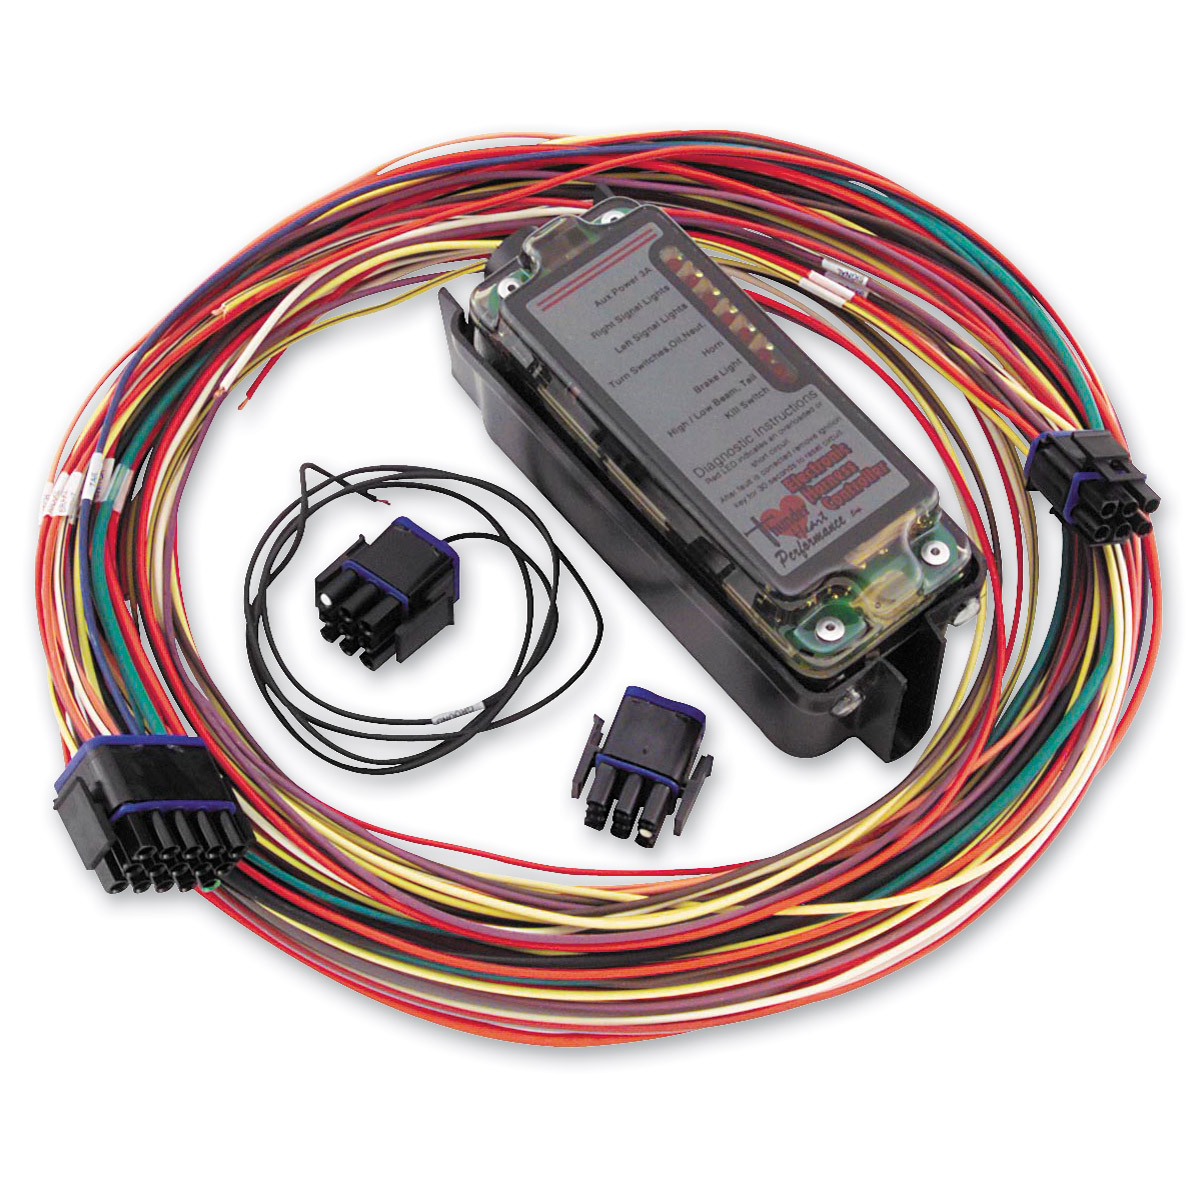 wiring harness kits wiring diagram best data